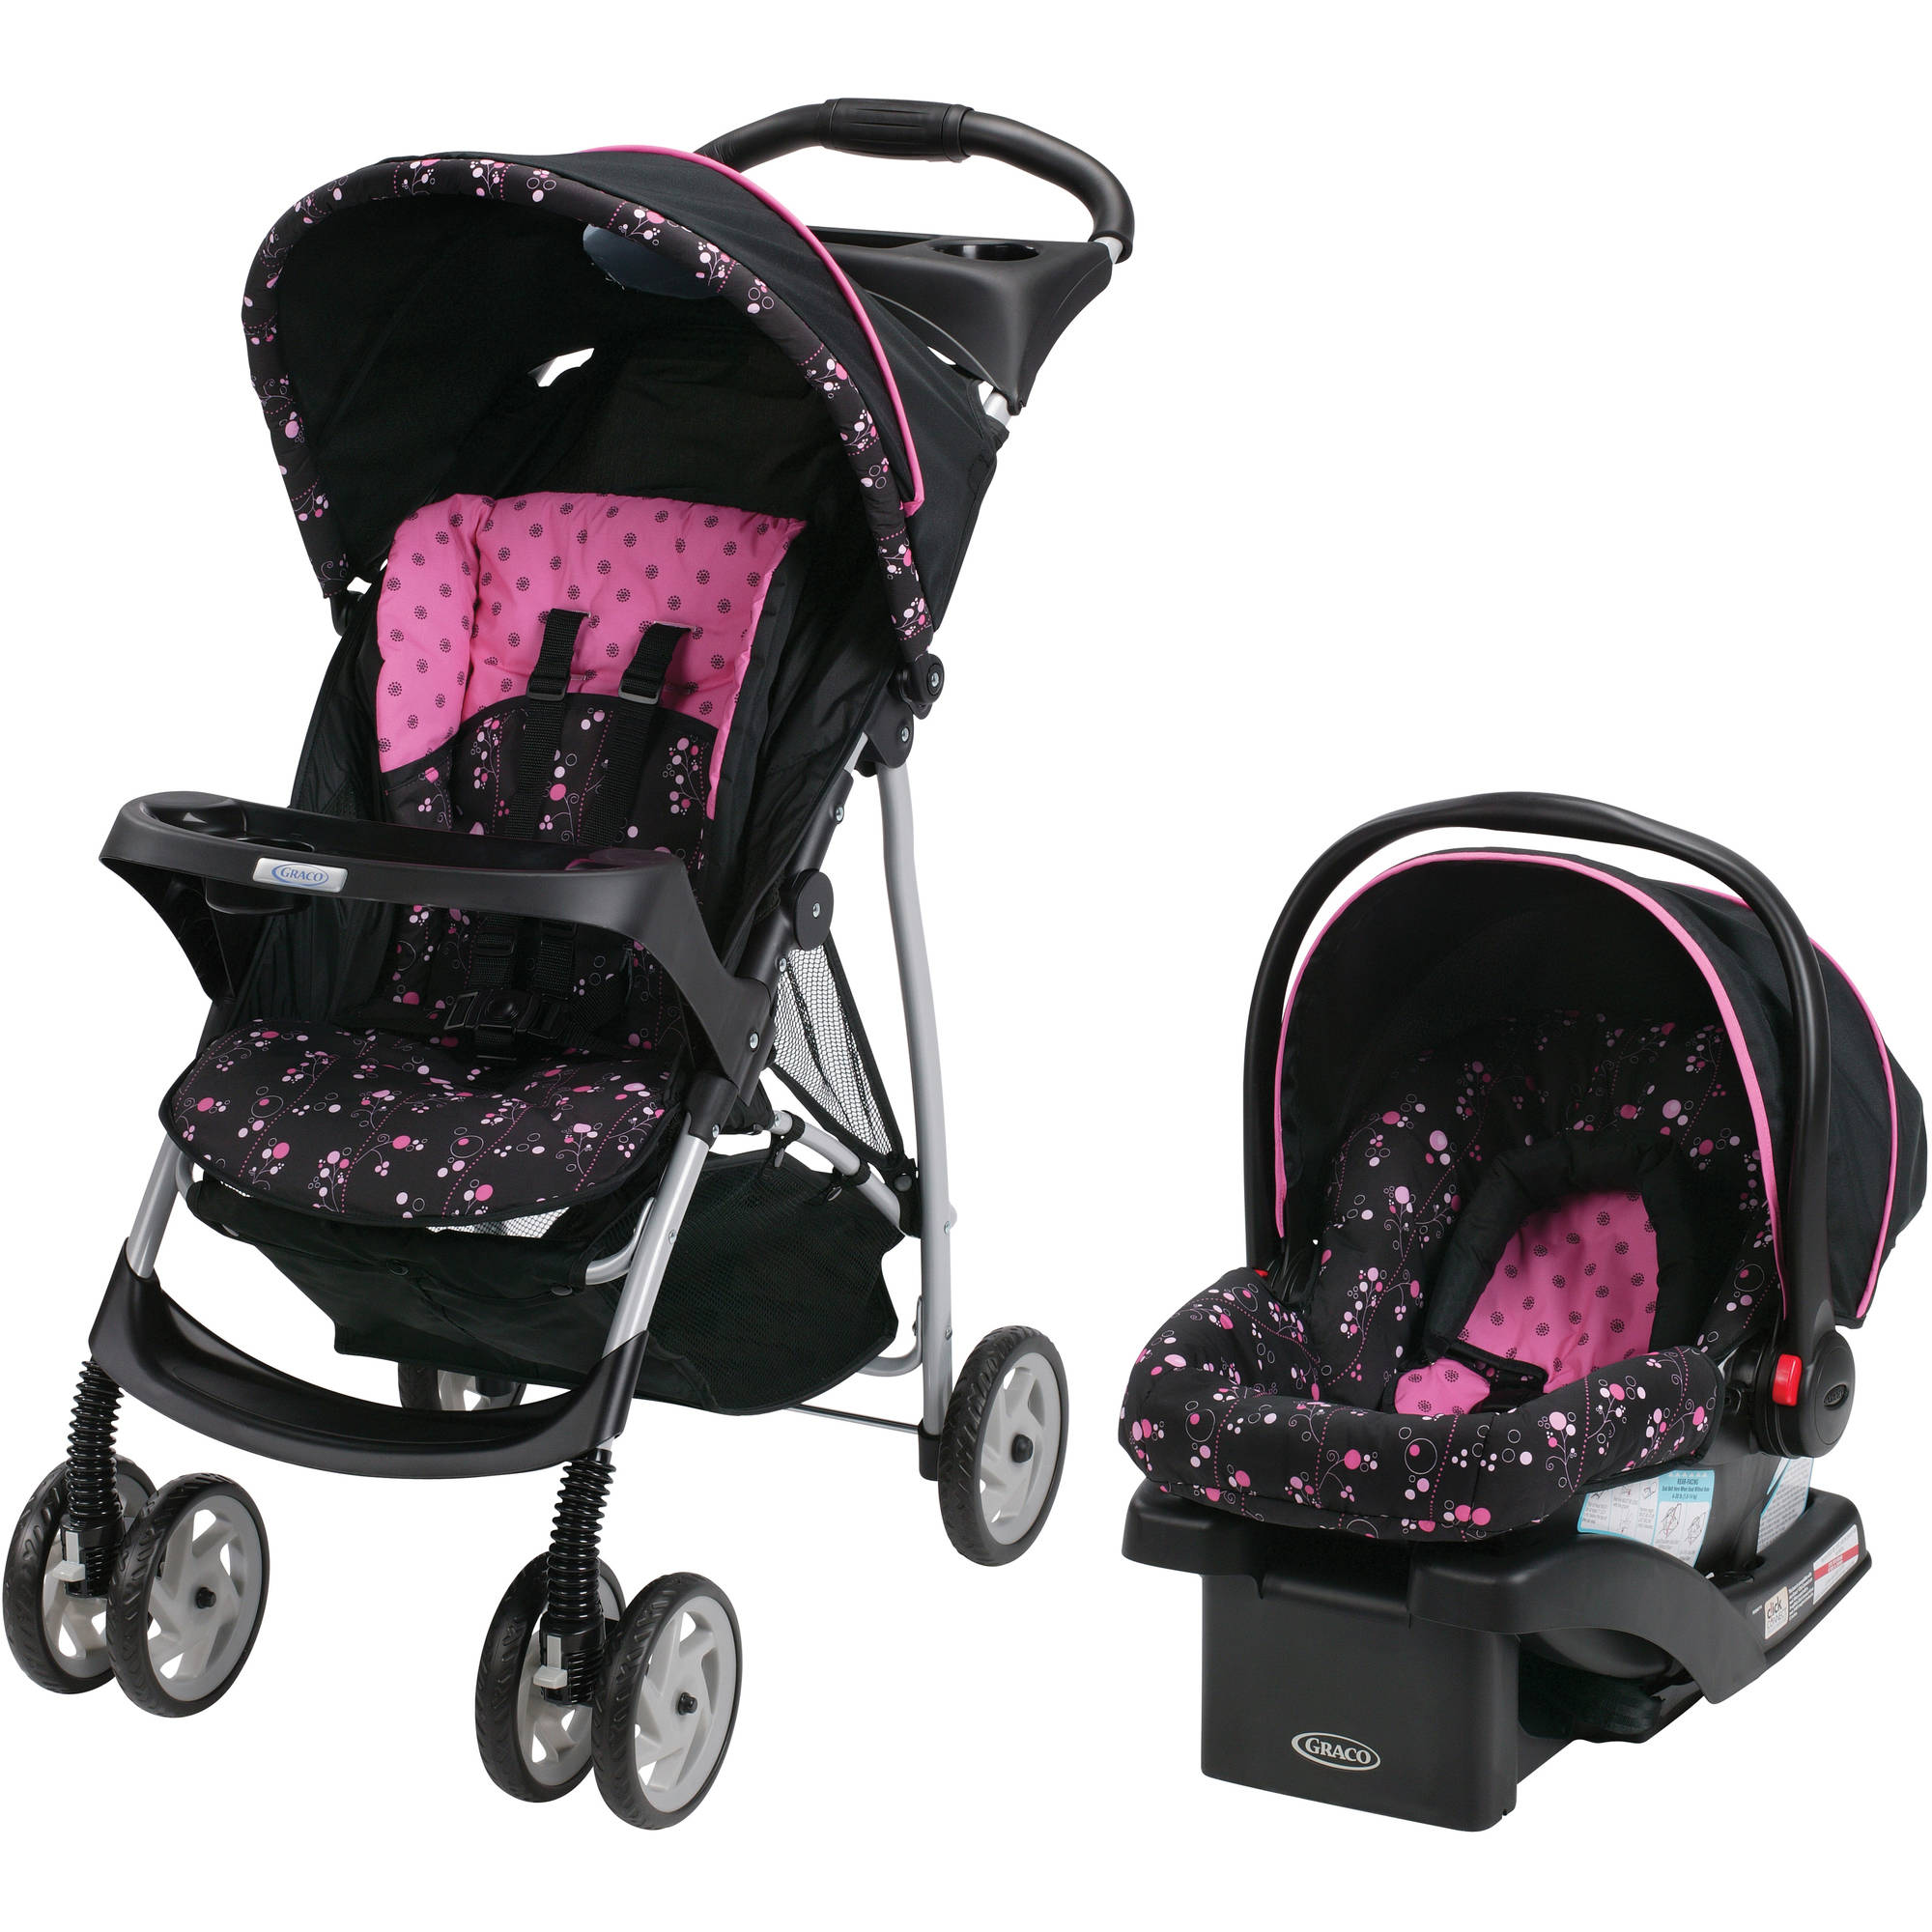 Graco Travel Systems Strollers